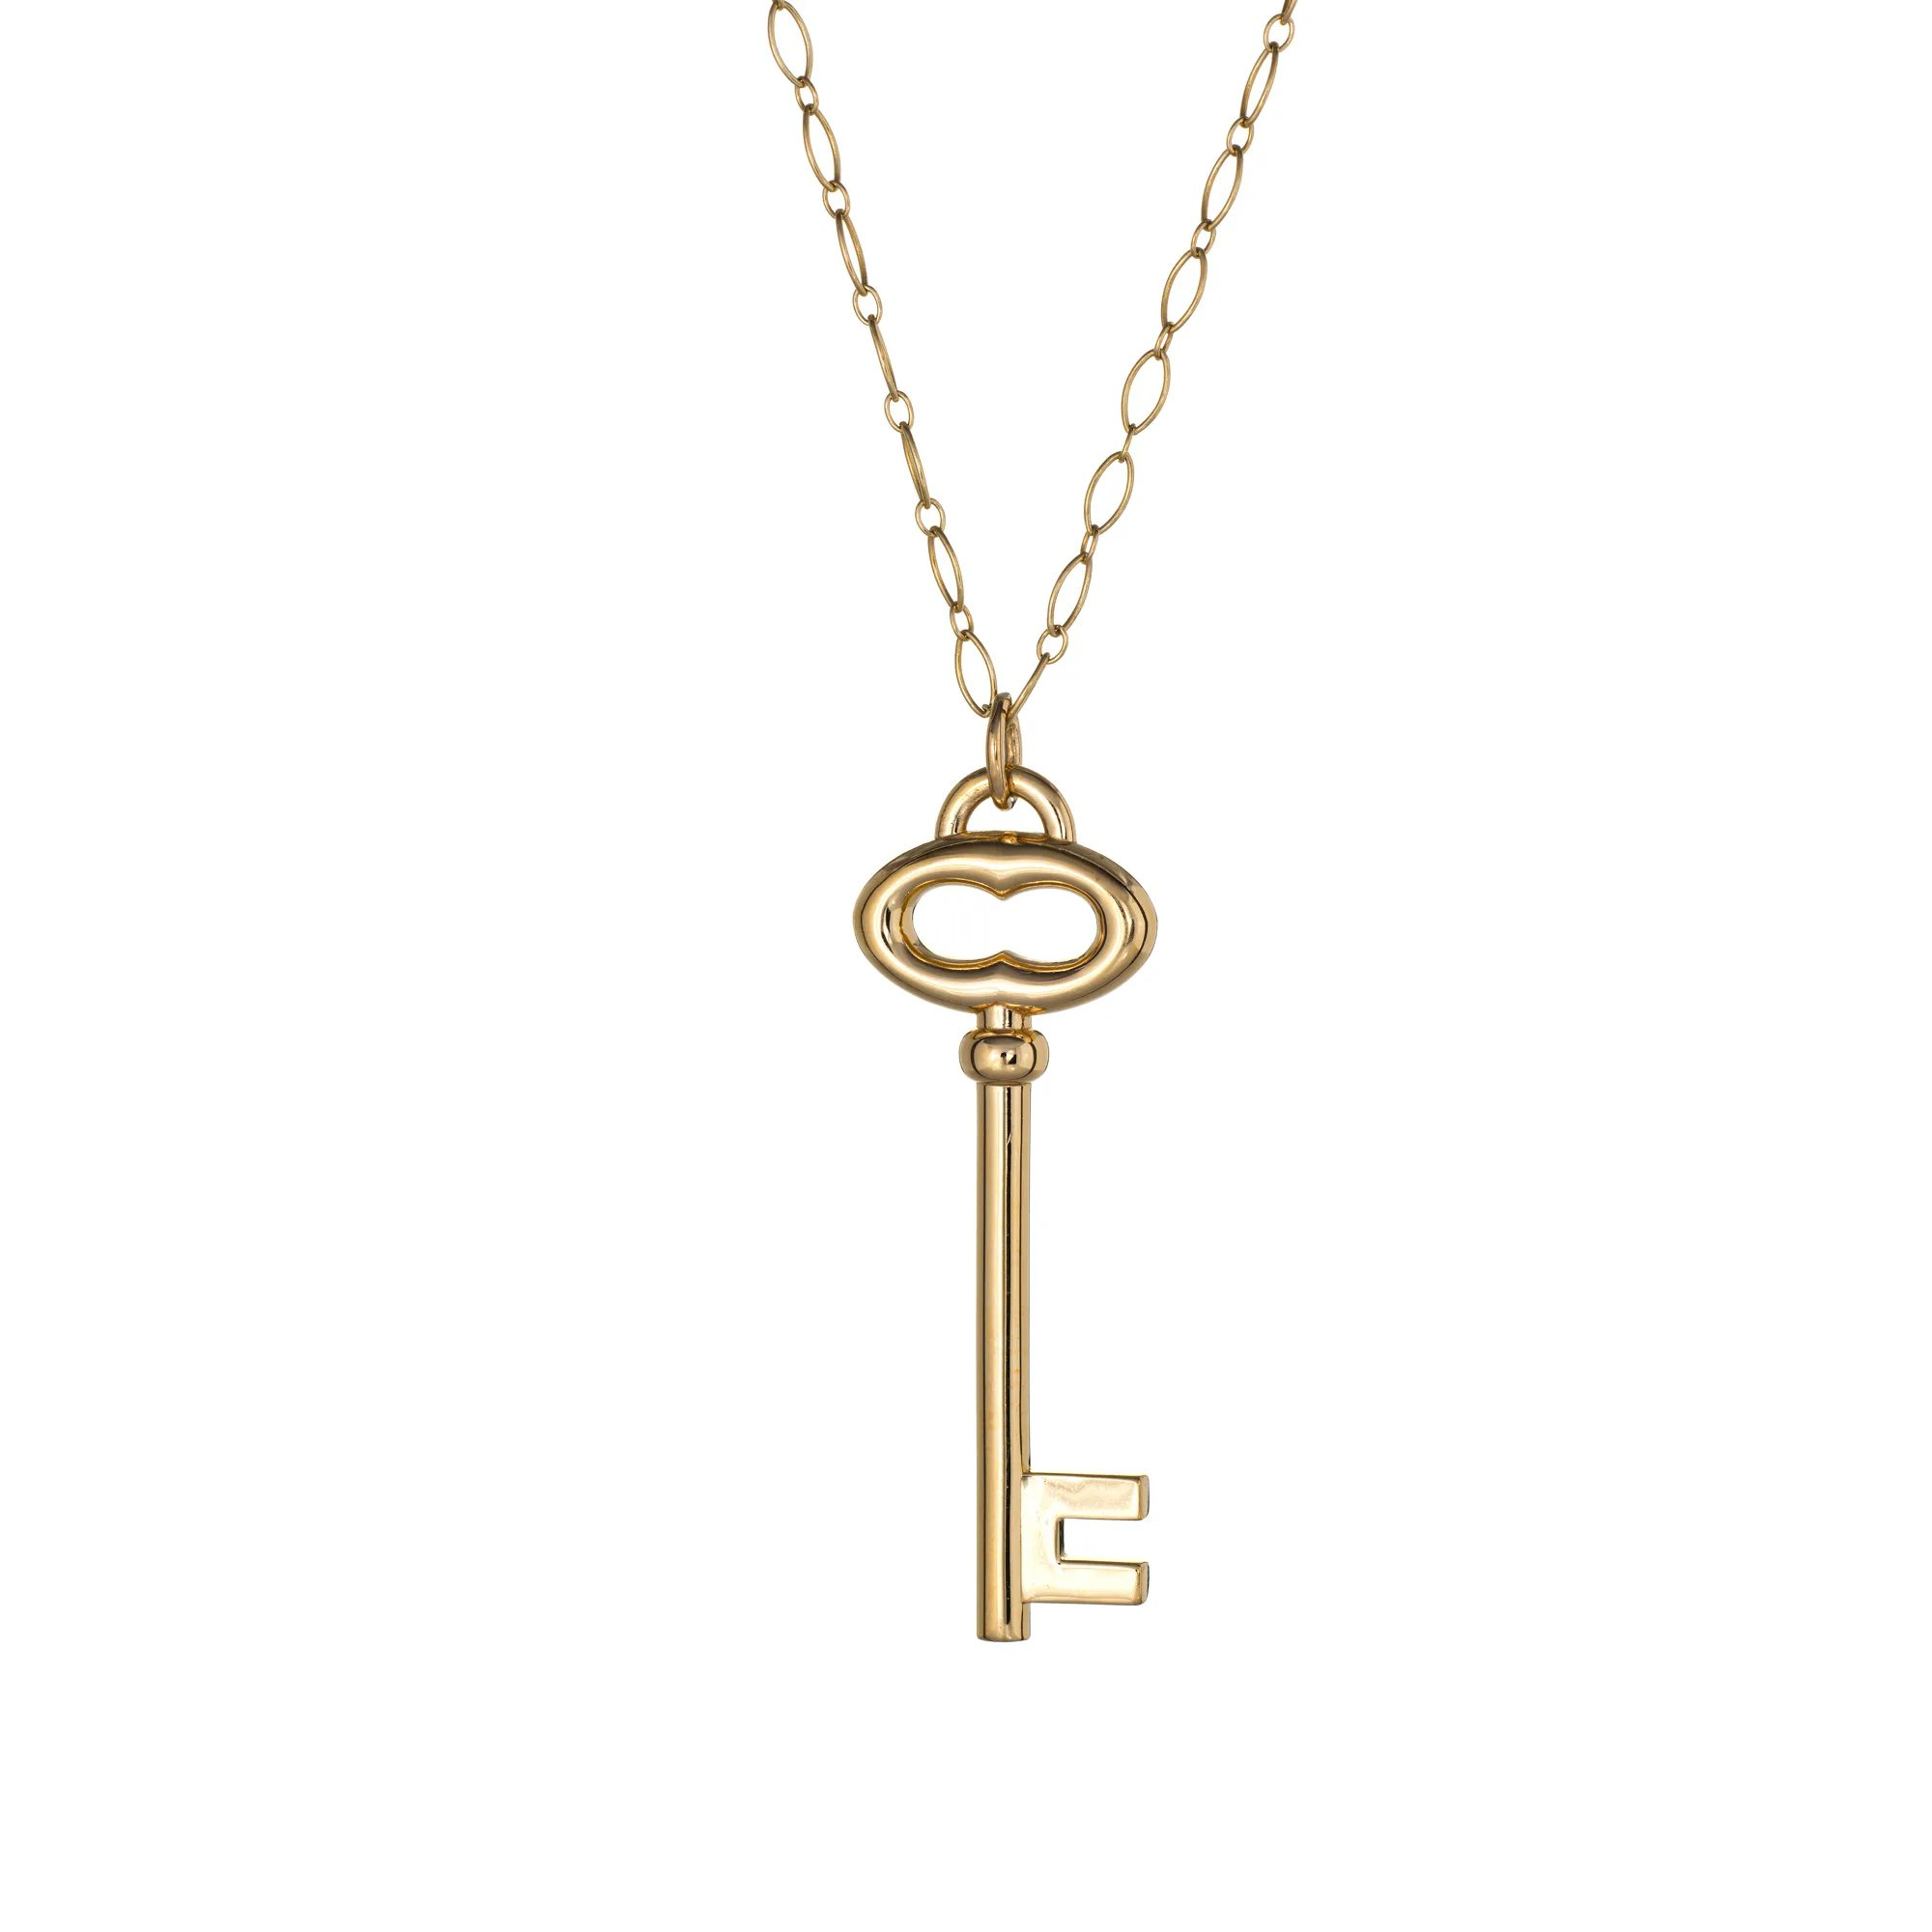 Tiffany Co Large Key Pendant Necklace 18 Karat Yellow Gold 20 5 Sophie Jane Ruby Lane